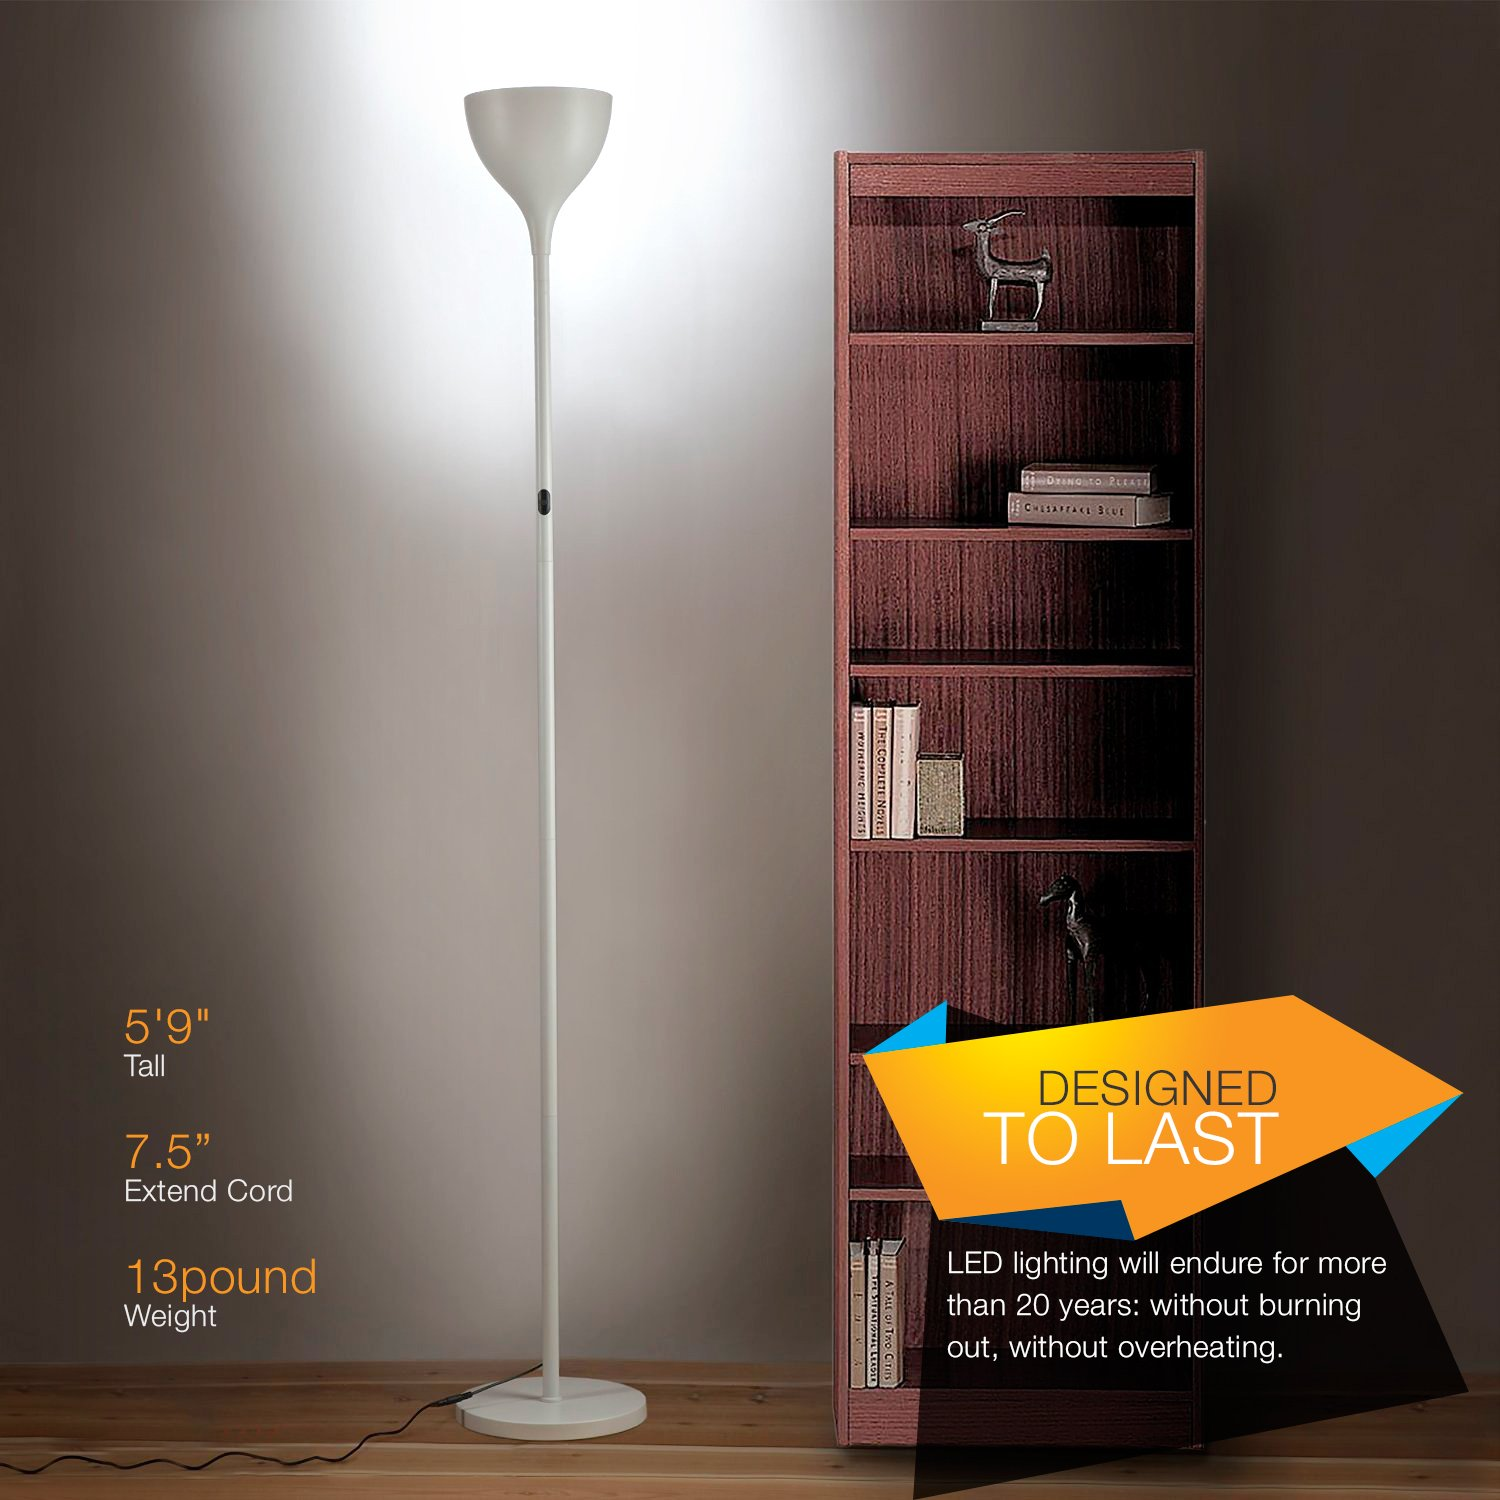 Brightech SKY Elite 2nd Gen LED Torchiere Floor Lamp - Tall Standing Pole Uplight For Living Rooms, Bedrooms; Homes & Offices - Super Bright Dimmable 20-Watt, Warm White Light - Alpine White by Brightech (Image #8)